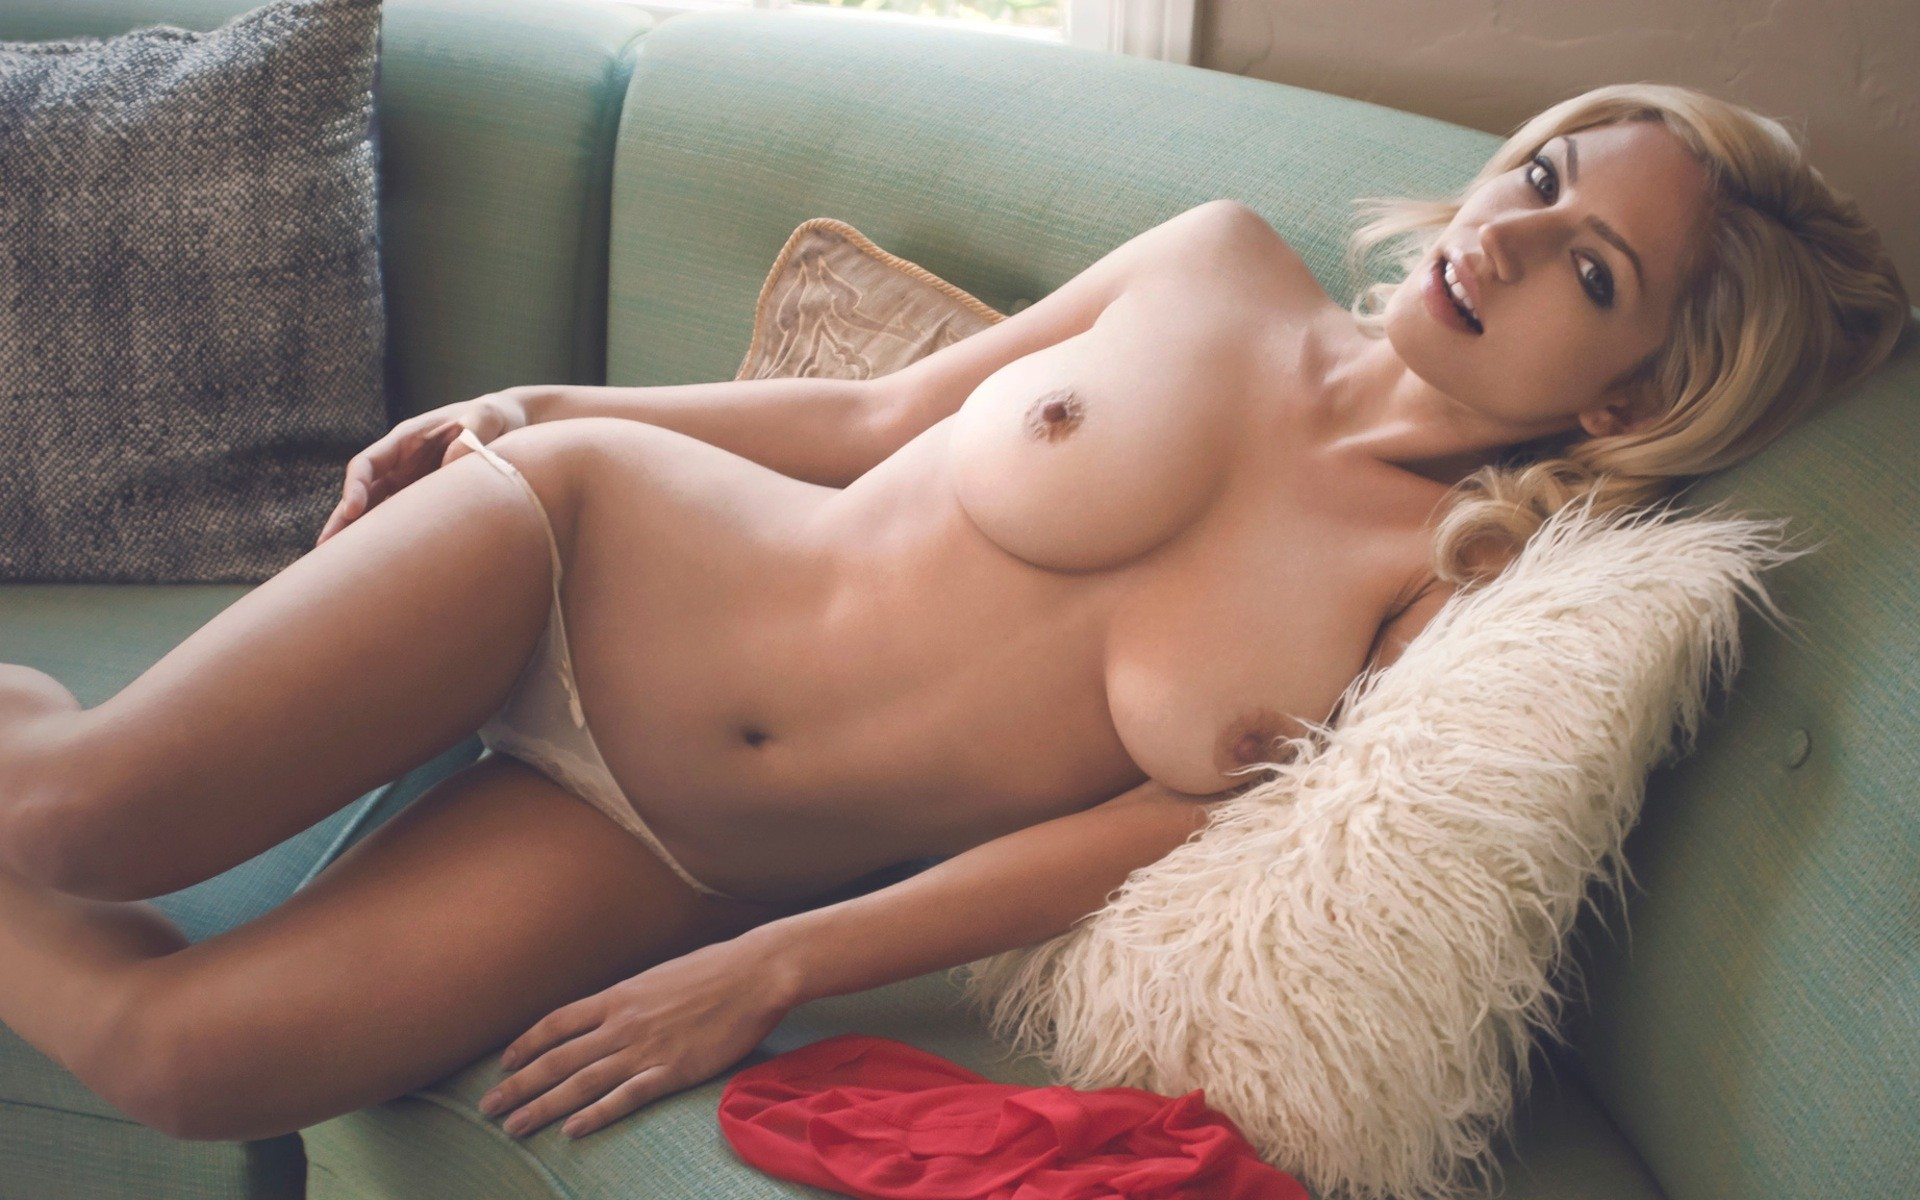 Naked blondes vol4 23 RedBust